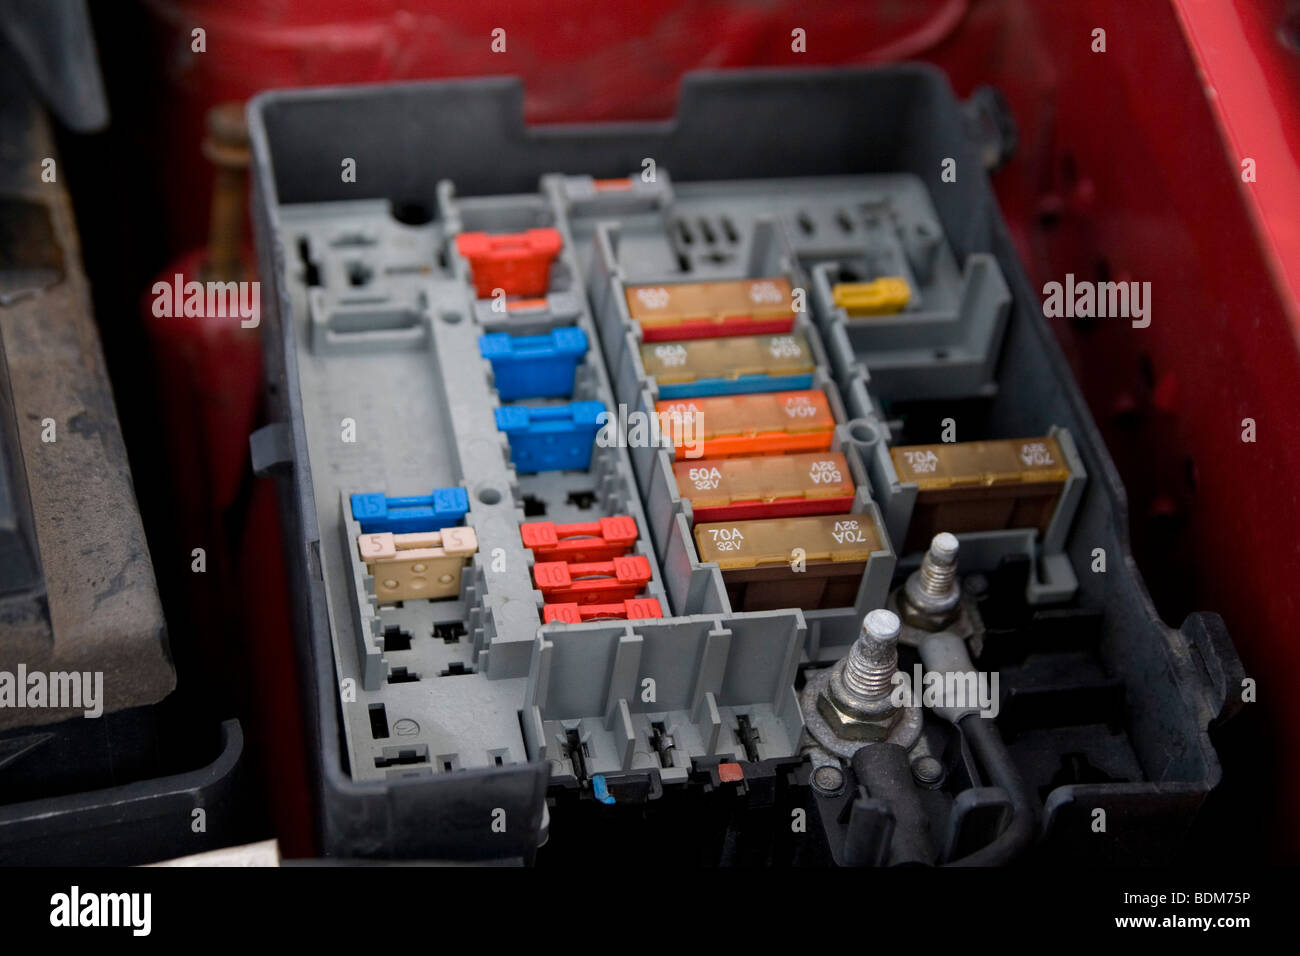 citroen berlingo 1999 fuse box citroen berlingo van fuse box diagram citroen berlingo fuse box stock photo: 25645586 - alamy #10